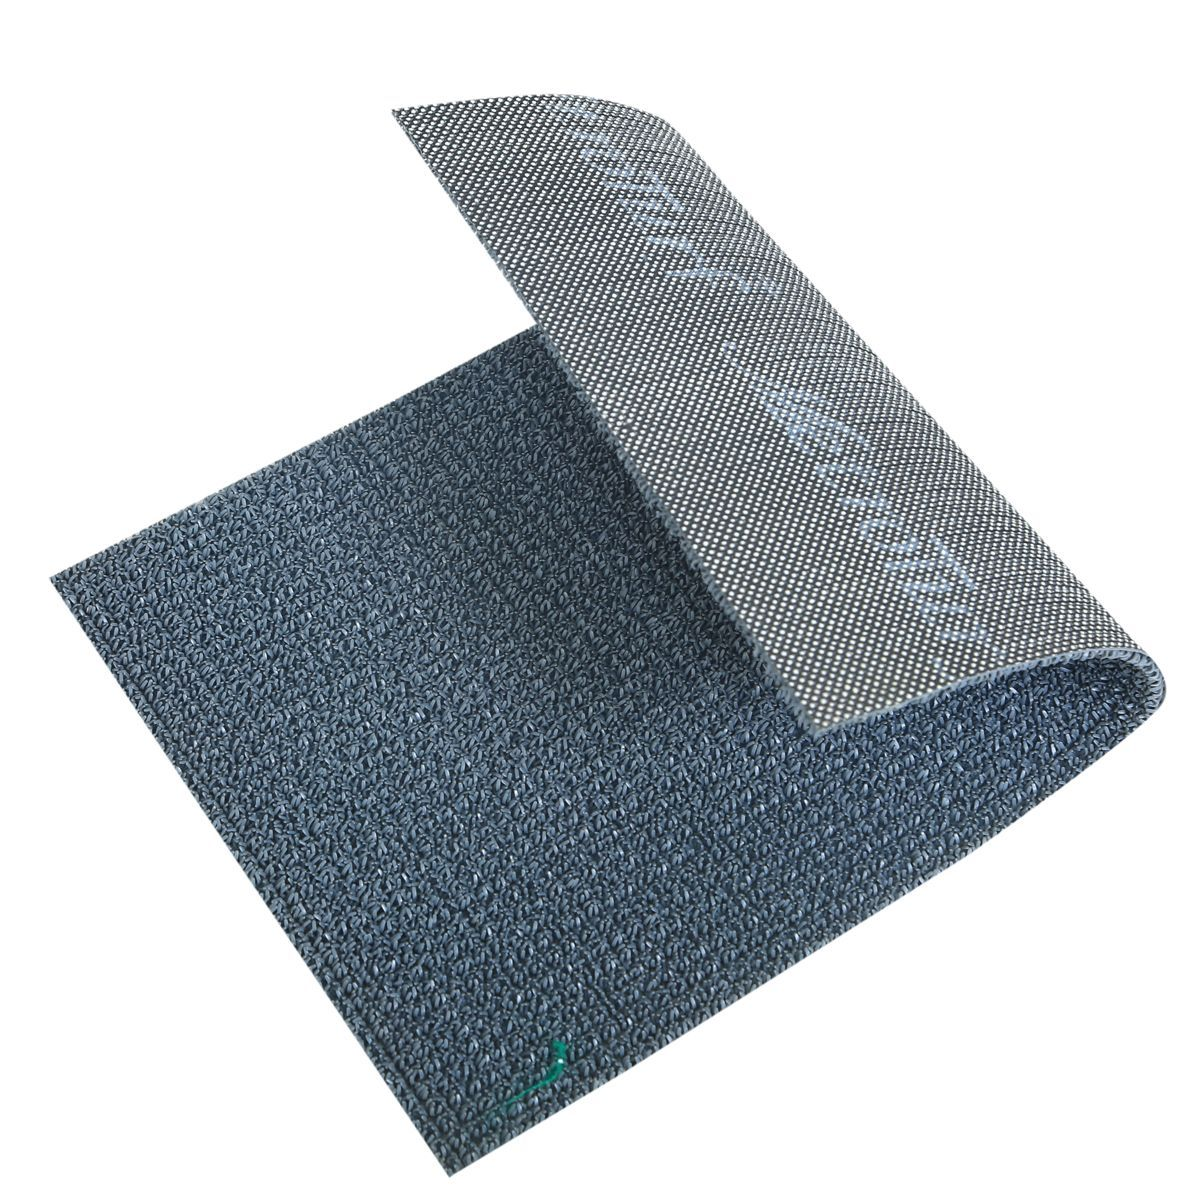 Kuber Industries™ Dirt Rubb Off Clean Footwear PVC Thick Doormat for Offices,Hotel ,Restaurtaurant,Home,Shop Color- Grey (Extra Large) Size : 90 cm x 60 cm x 1.5 cm